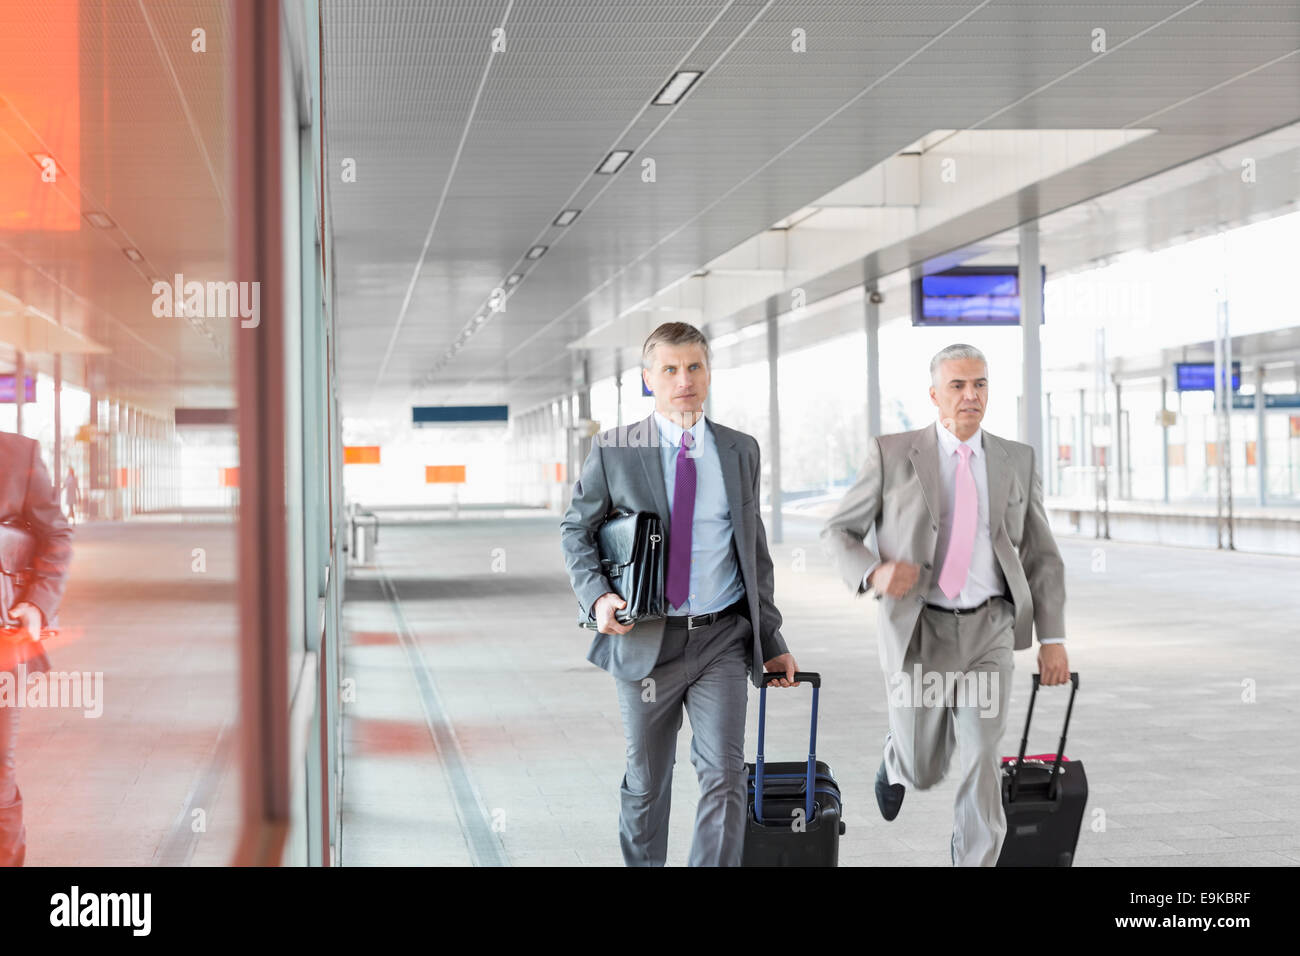 Middle aged businessmen with luggage rushing on railroad platform - Stock Image